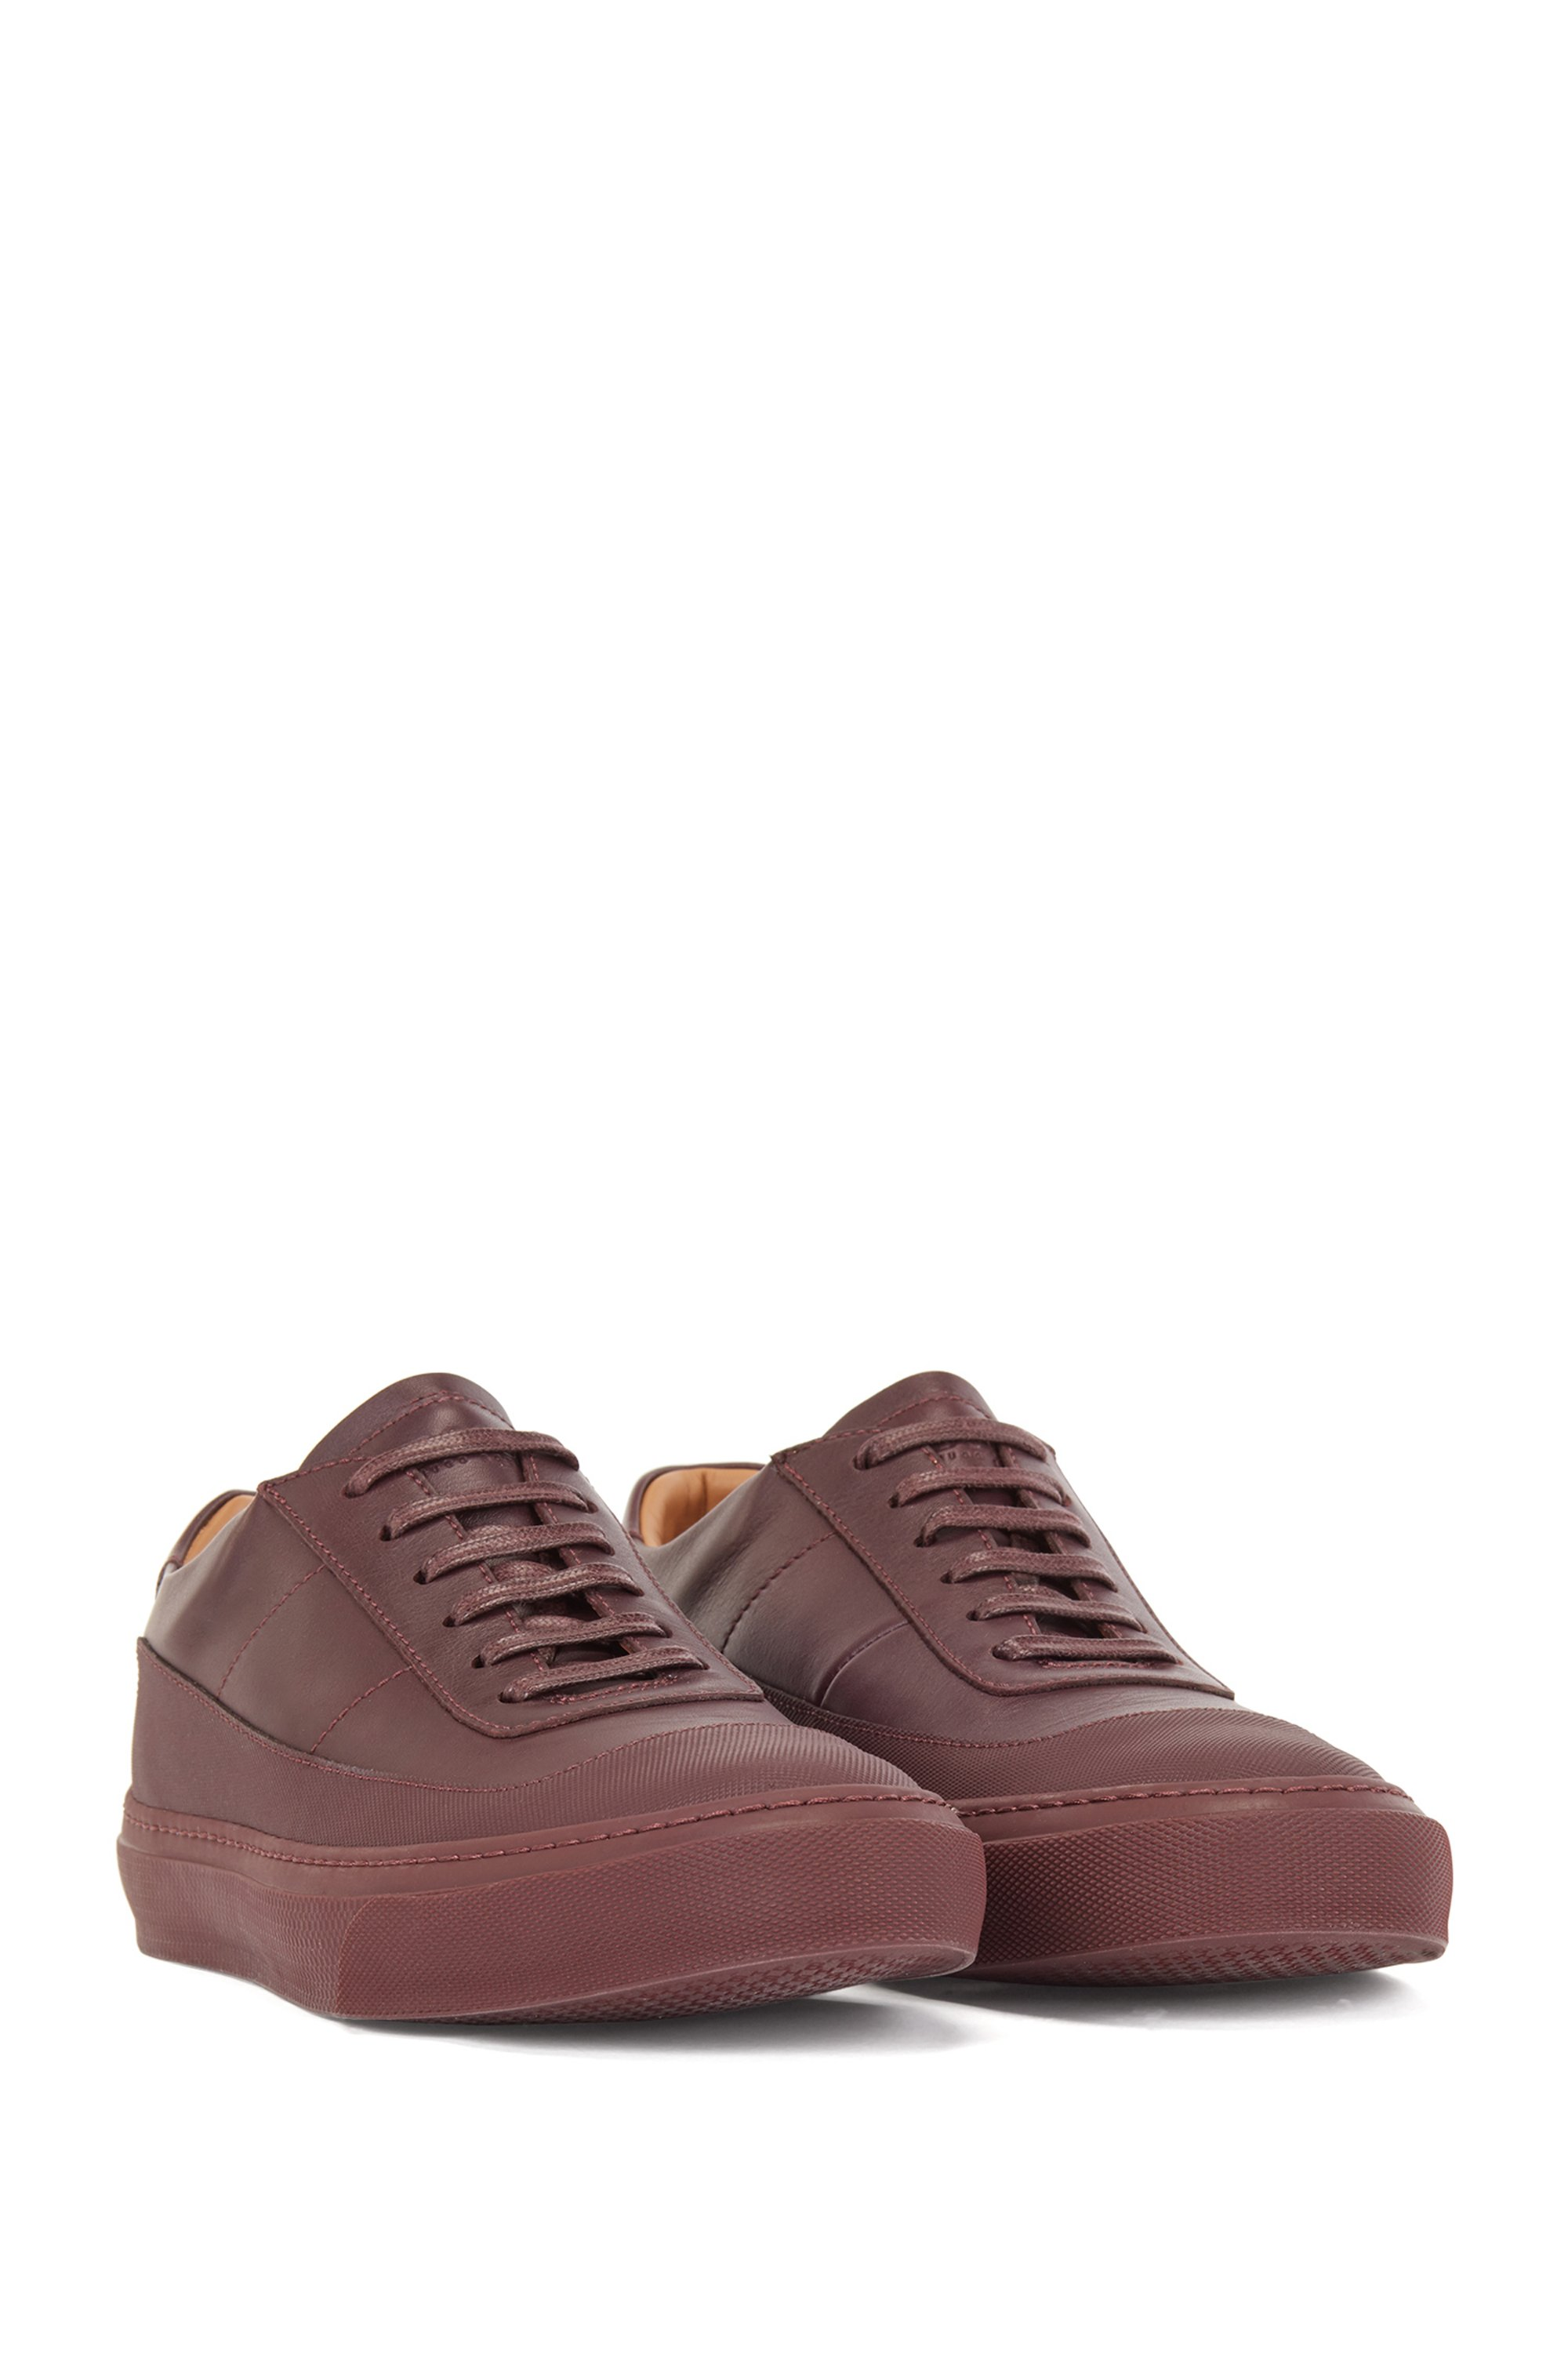 Italian-made low-top trainers in rubberised leather